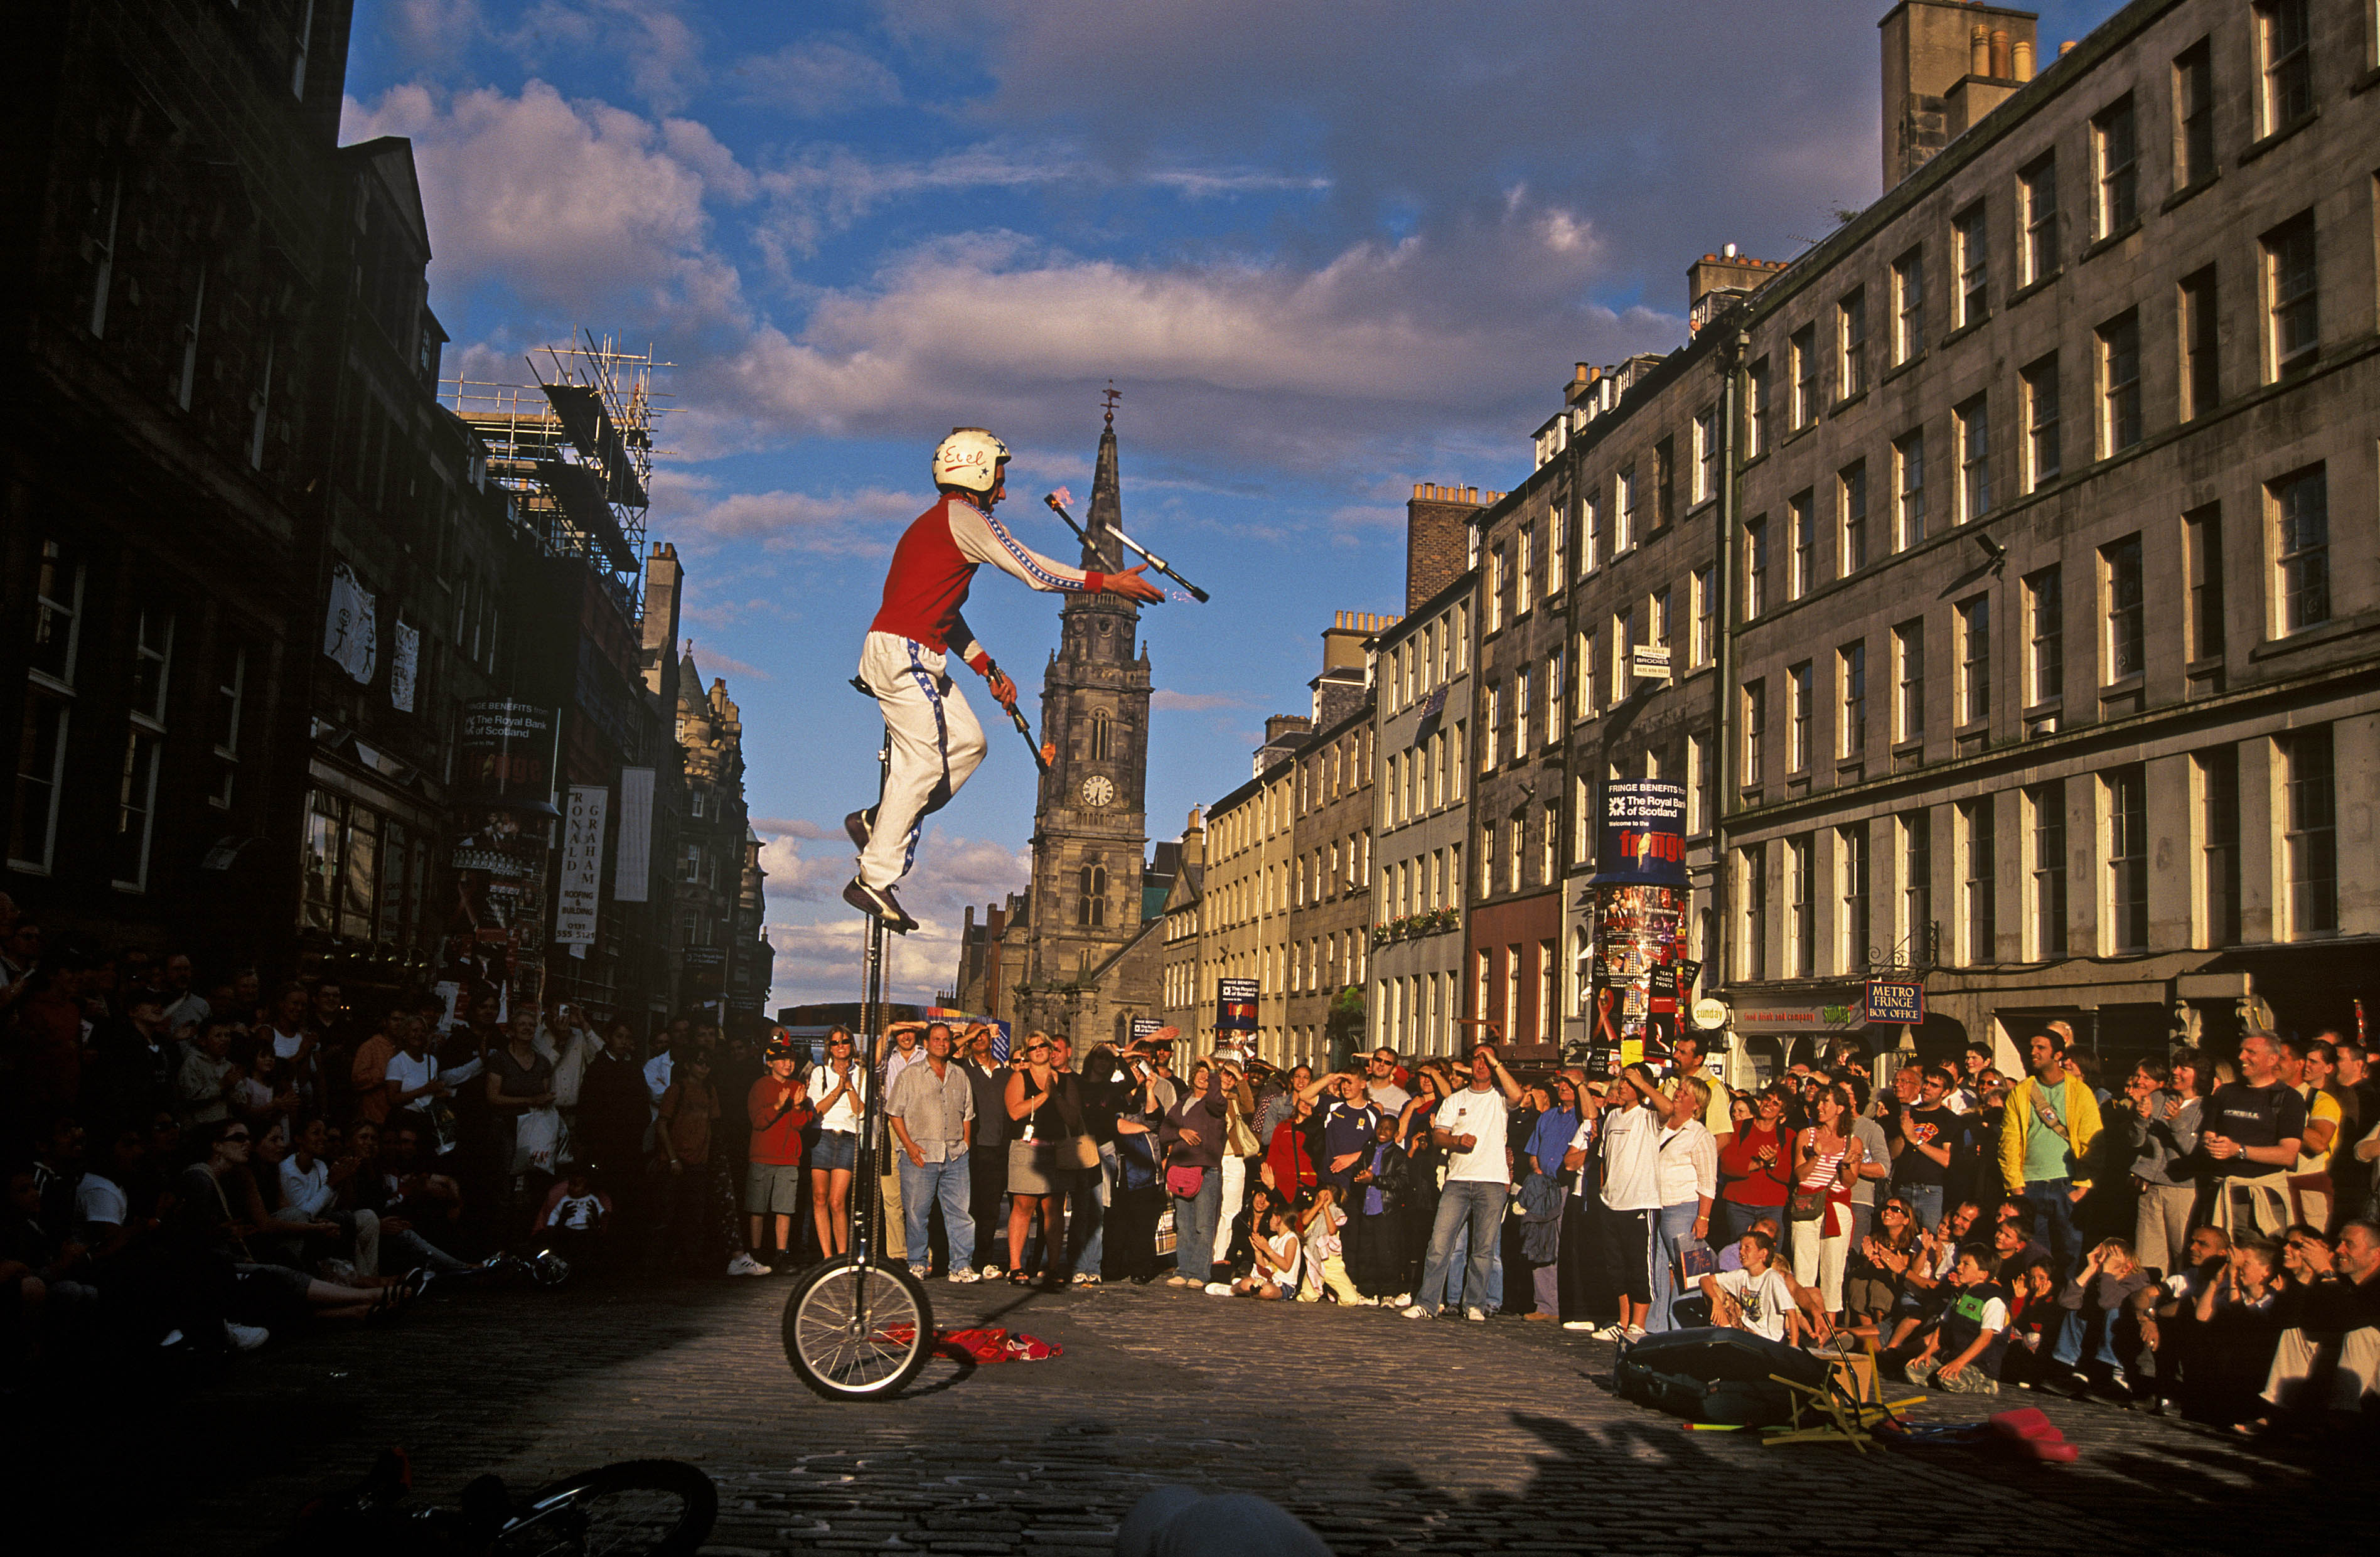 THE ROYAL MILE DURING THE FESTIVAL, EDINBURGH, LOTHIAN.